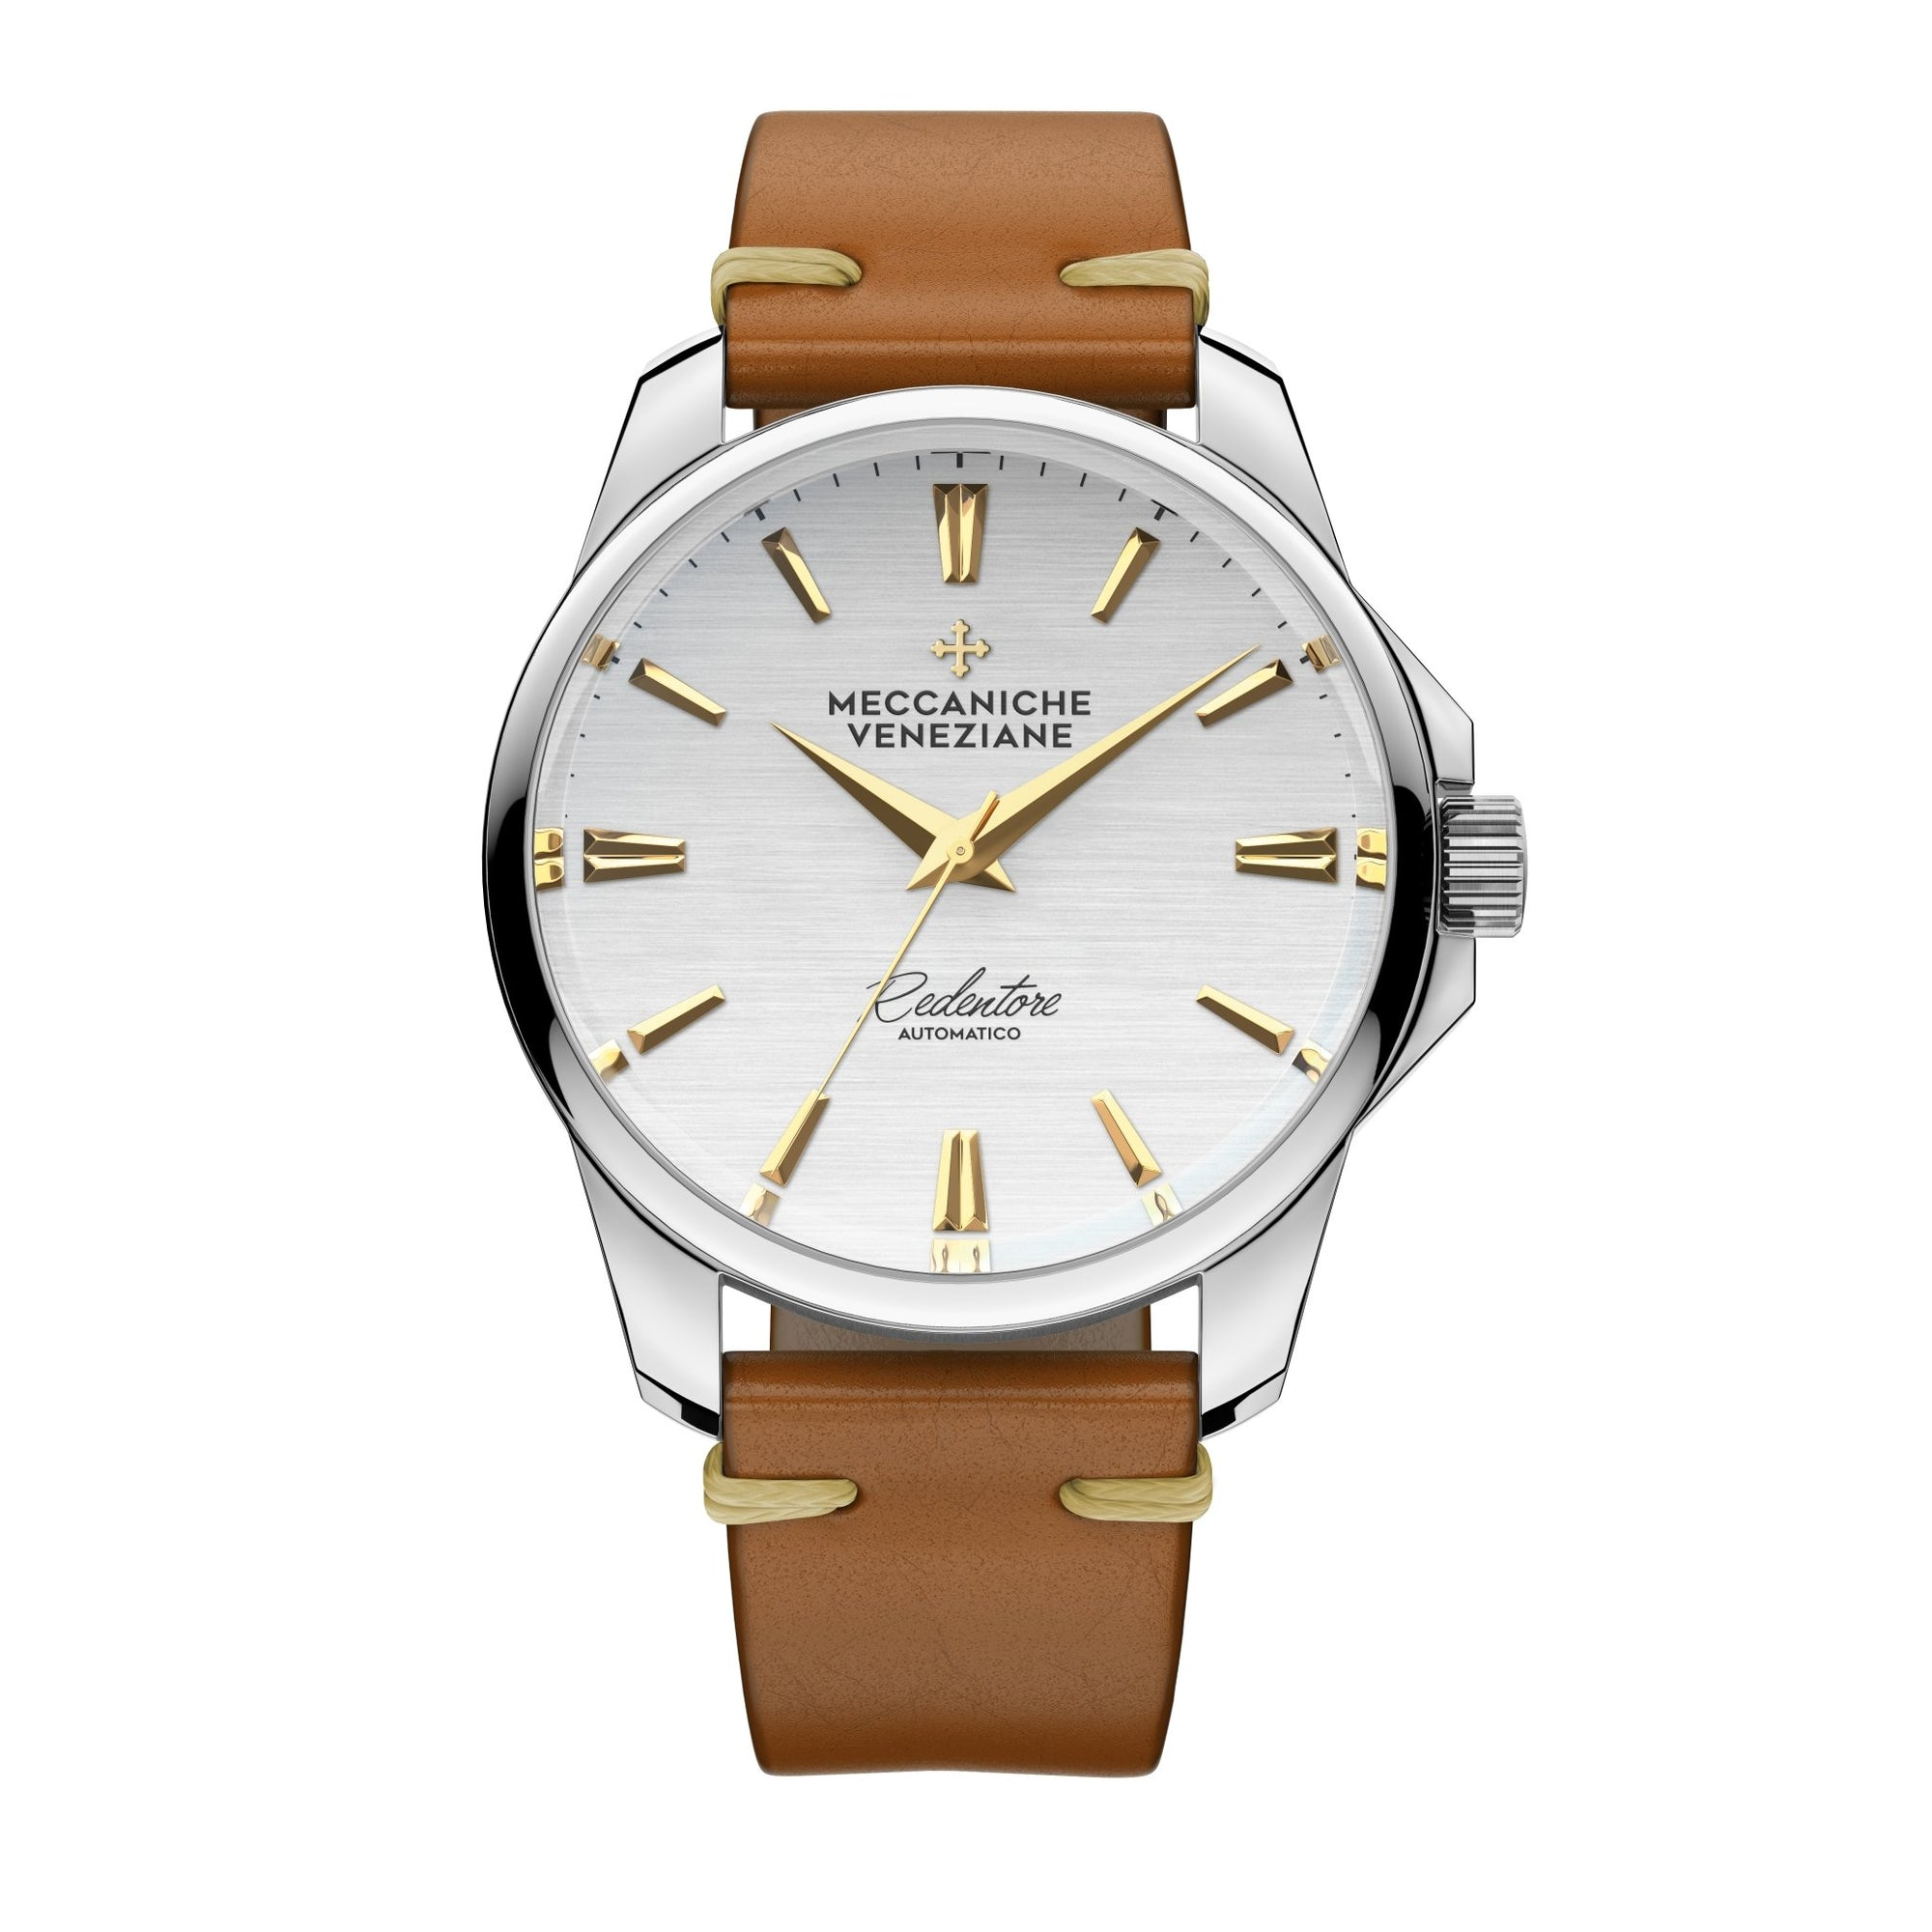 Meccaniche Veneziane Redentore Argento Gold - Watches & Crystals